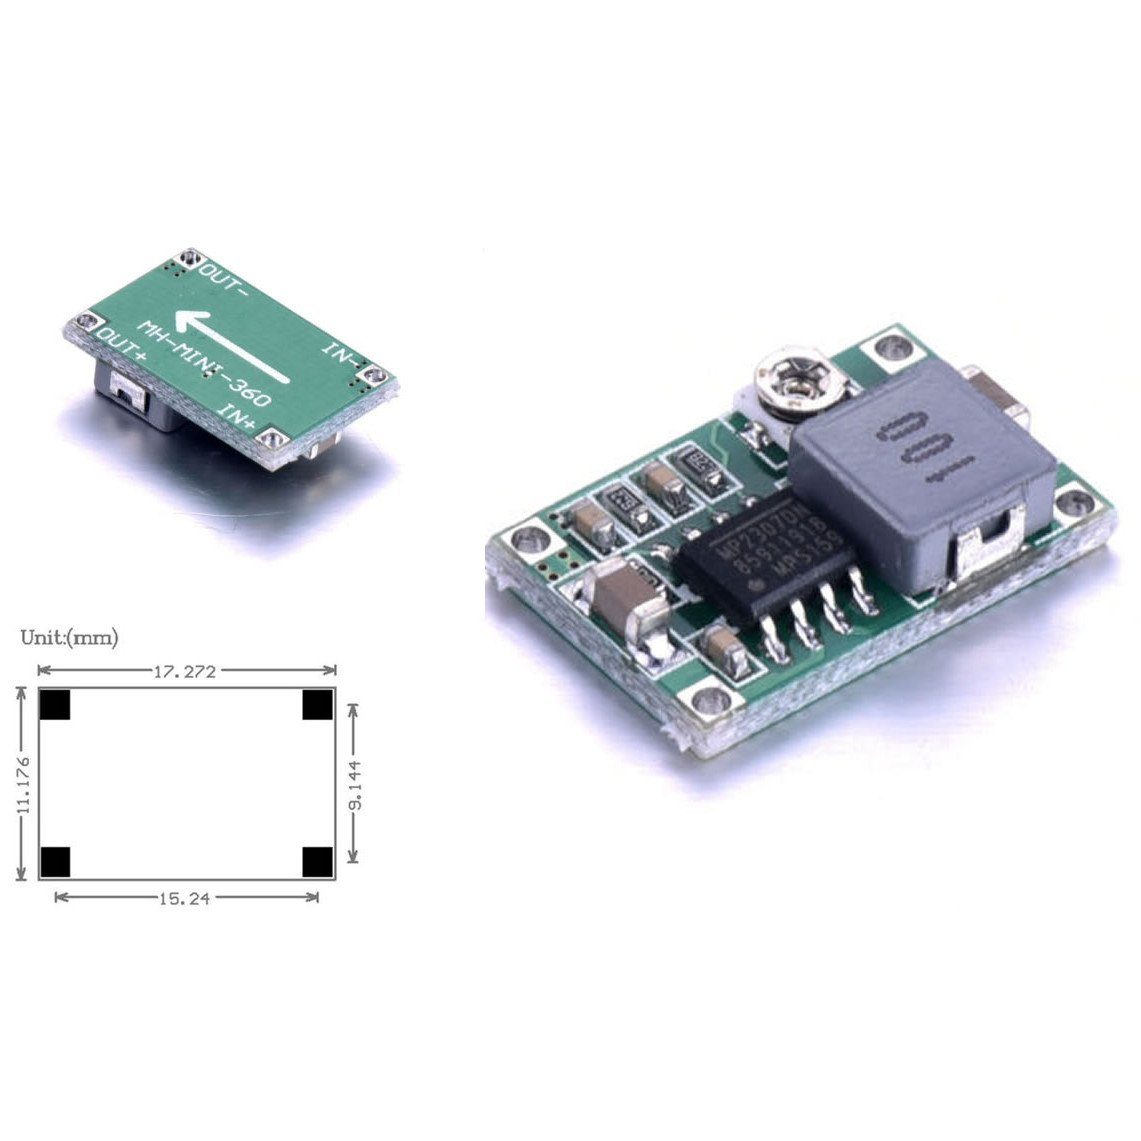 10pcs Jacobsparts Mini360 3a Dc Voltage Step Down Power High Efficiency Switch Mode 33v 5a Converter Buck Module 5v 9v 12v Home Audio Theater